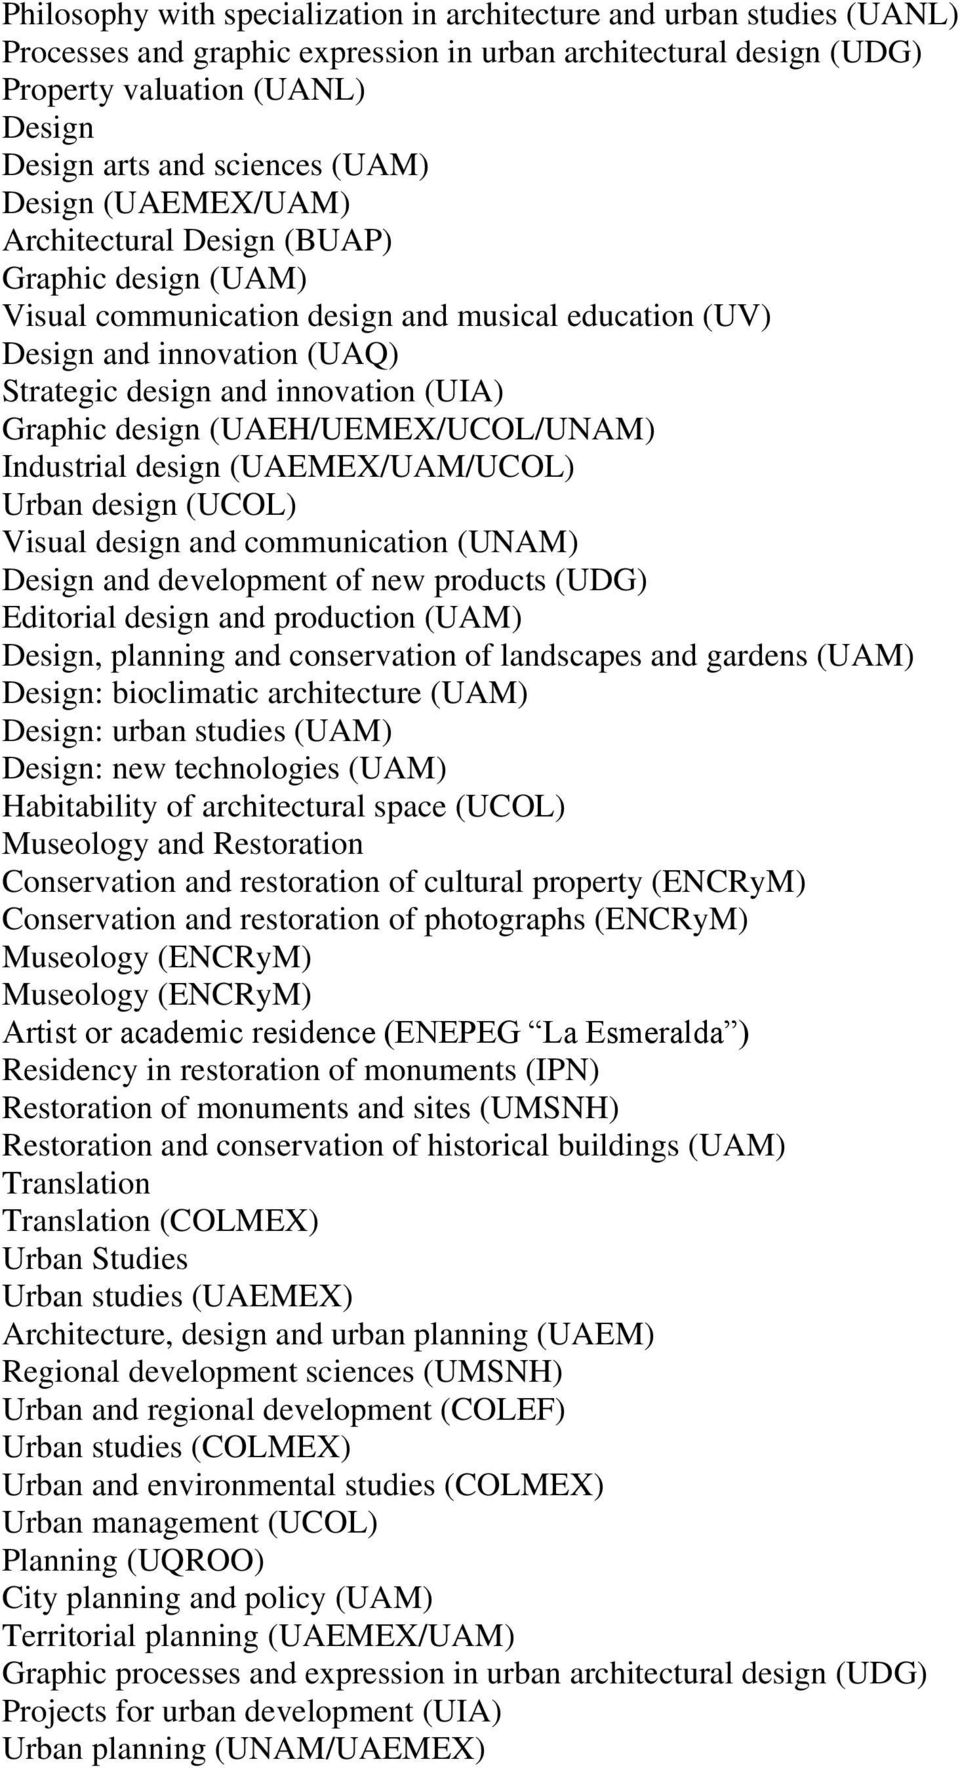 Graphic design (UAEH/UEMEX/UCOL/UNAM) Industrial design (UAEMEX/UAM/UCOL) Urban design (UCOL) Visual design and communication (UNAM) Design and development of new products (UDG) Editorial design and